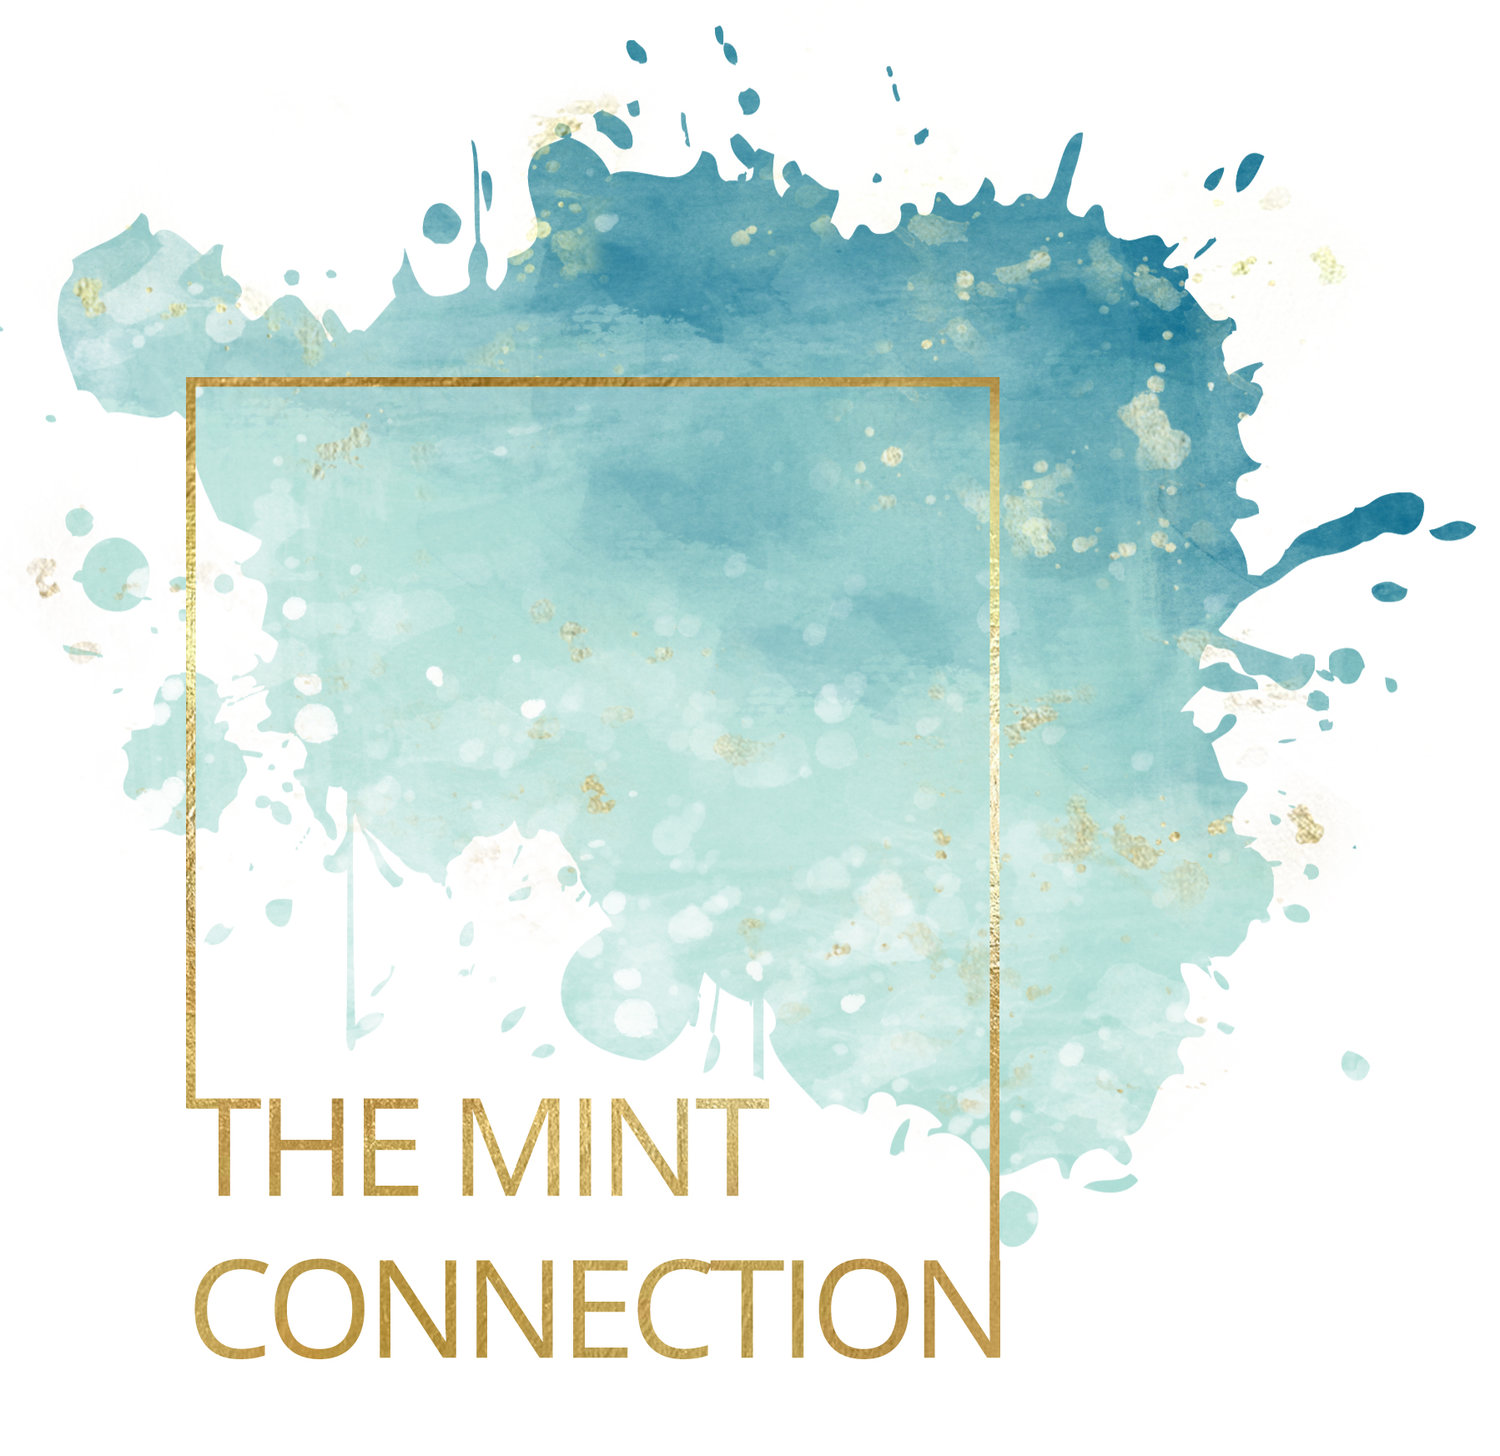 The Mint Connection